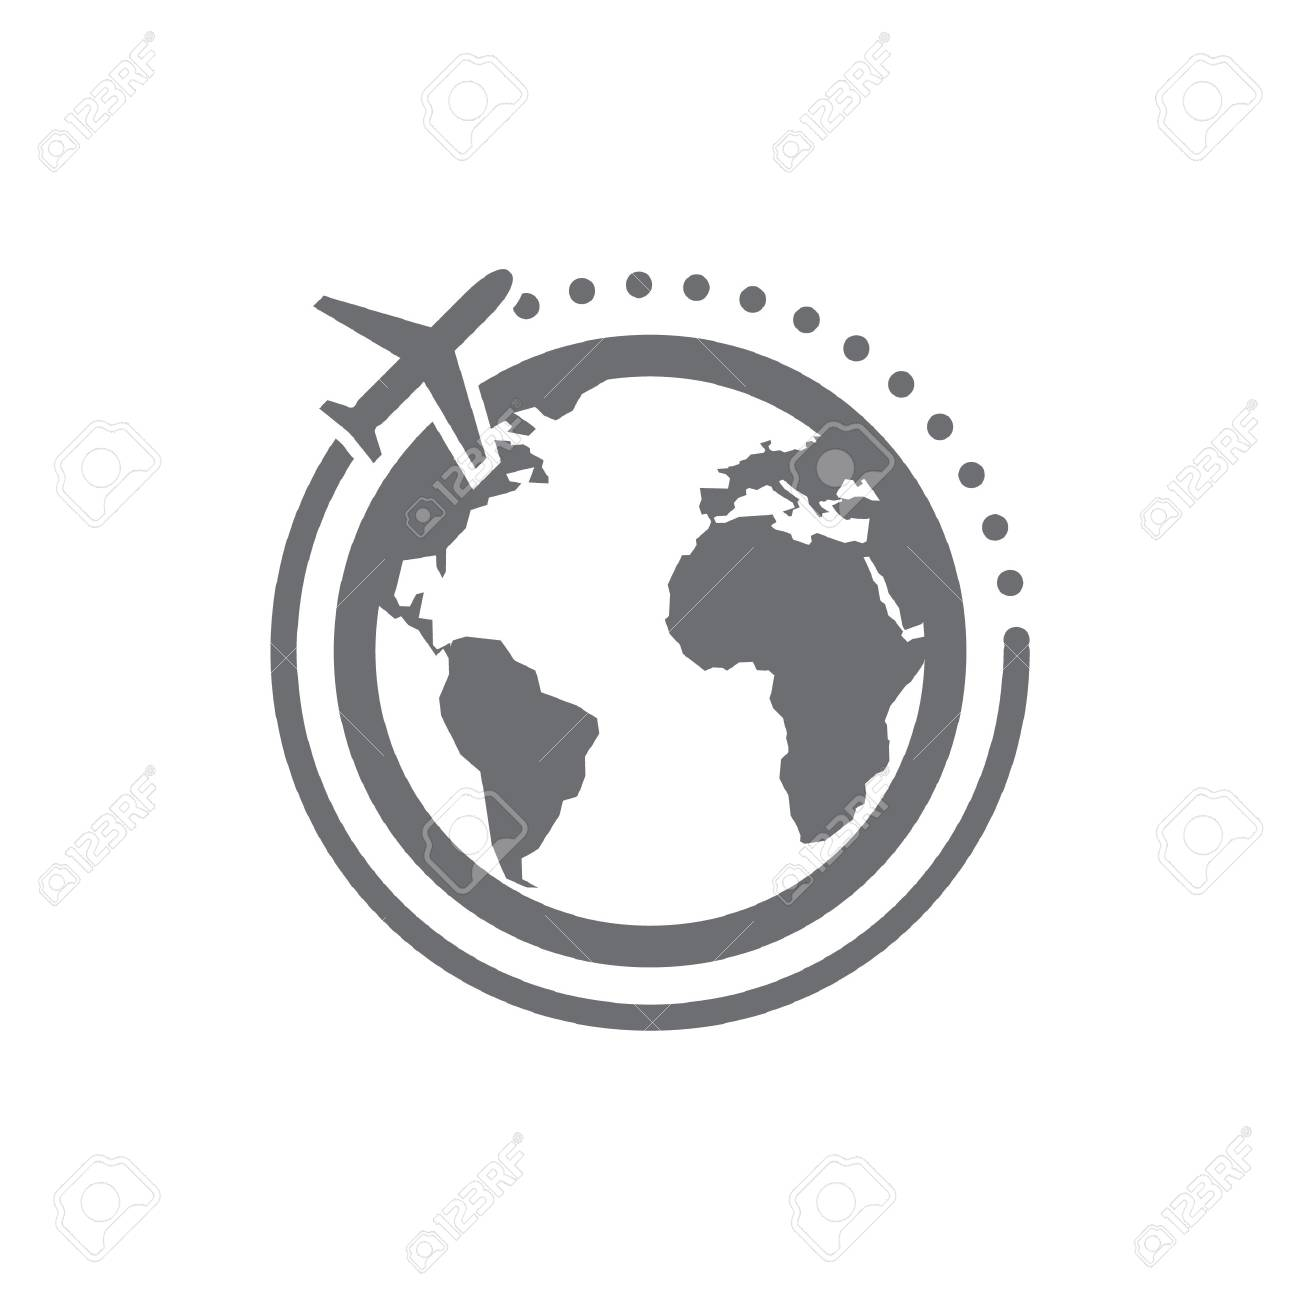 Vector - World tour icon